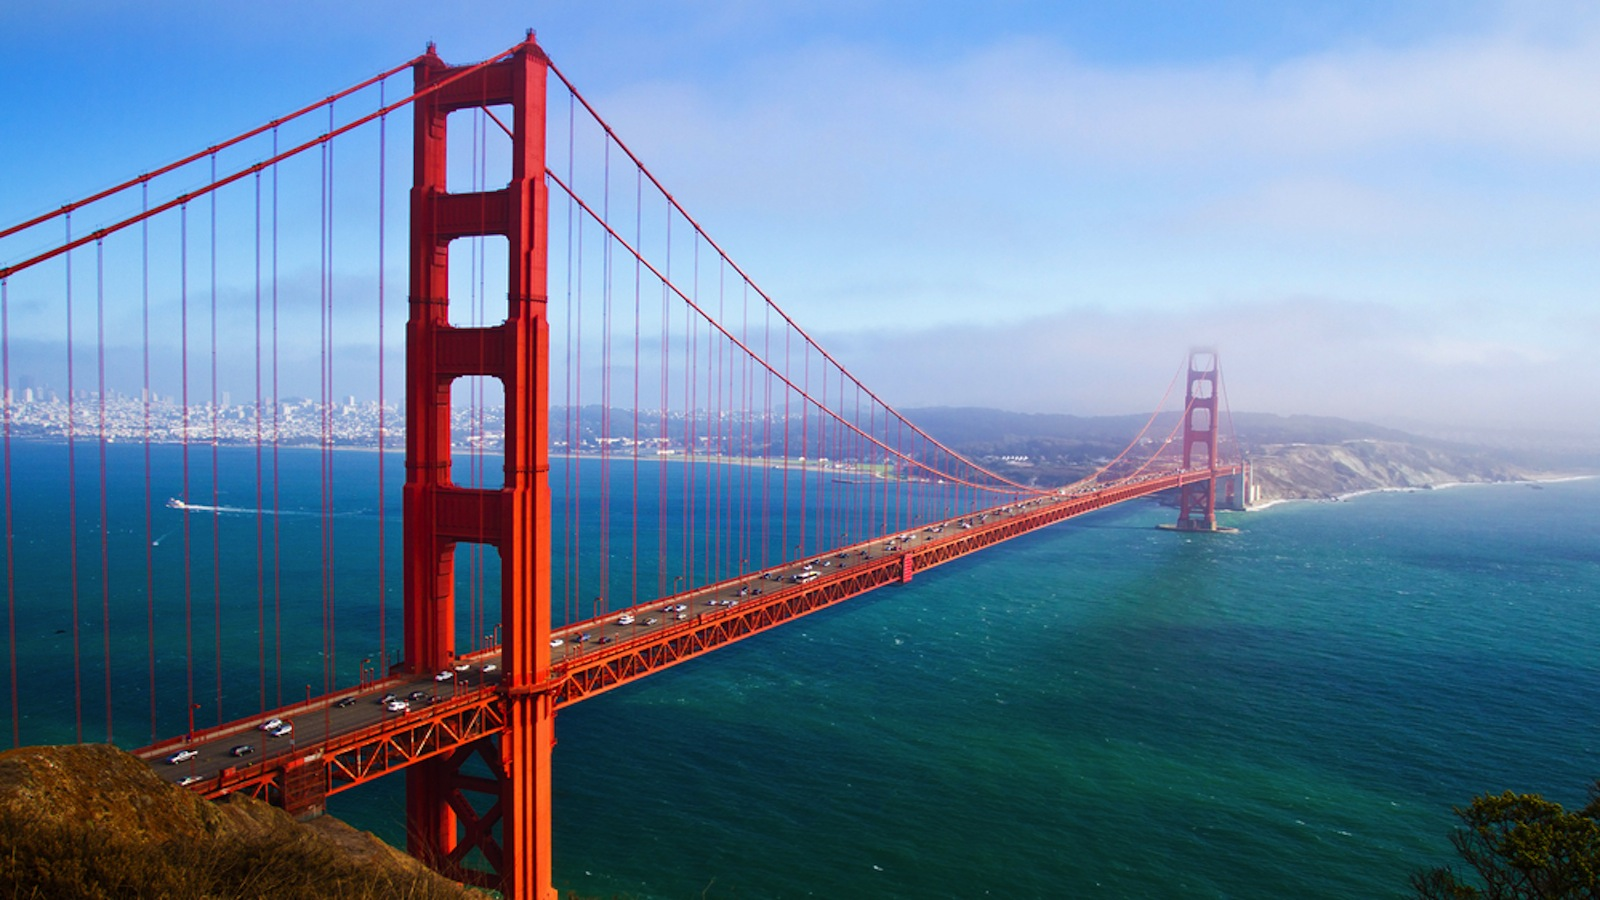 San Francisco one of top 10 places for video editors